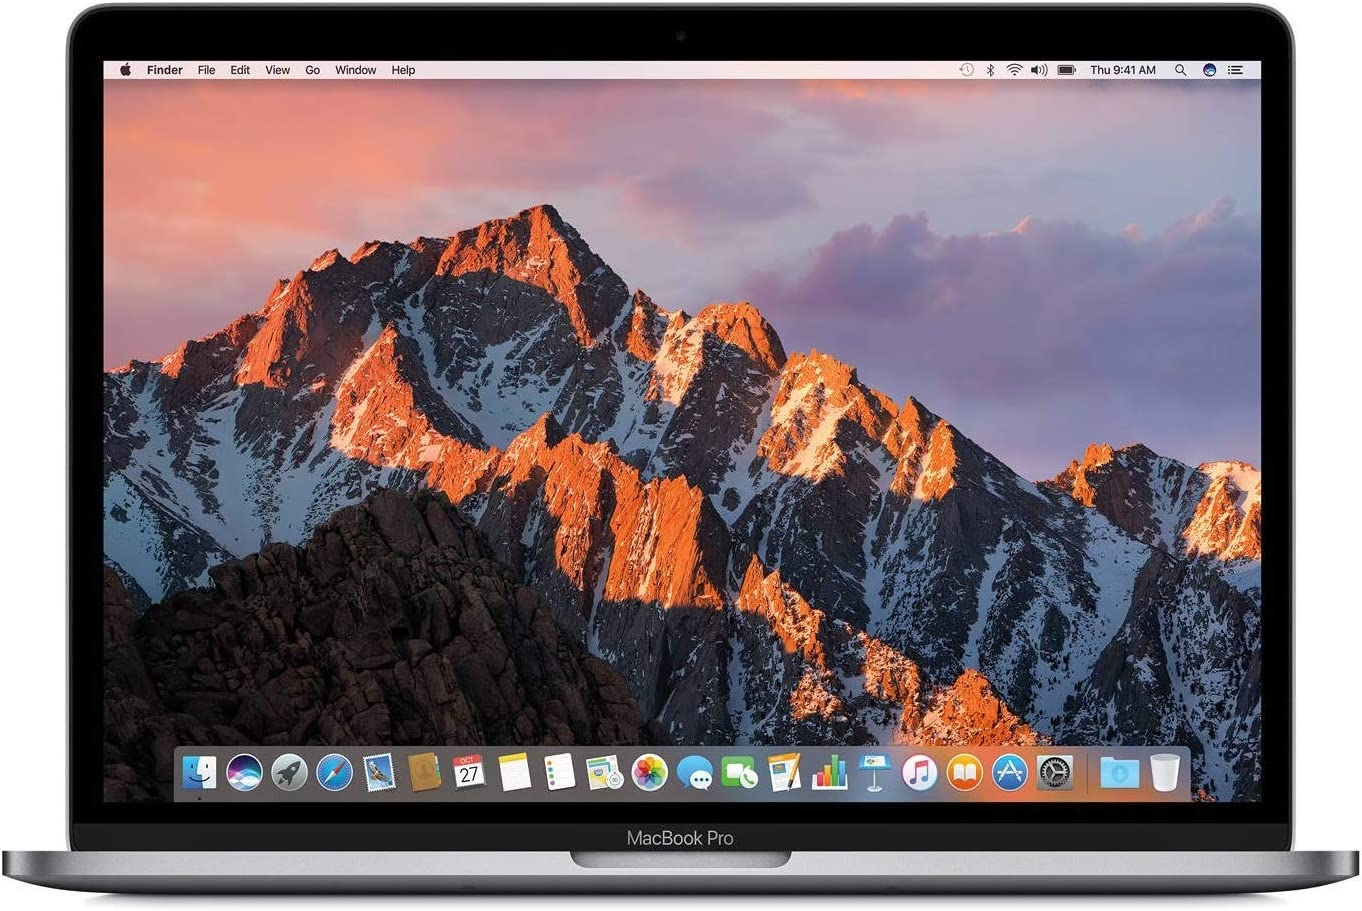 Apple MacBook Pro Retina Display MPXQ2LL/A 13in 2.3GHz Intel Core i5 Dual Core, 8GB RAM, 256GB SSD, Space Grey, macOS Mojave 10.14 (Renewed)